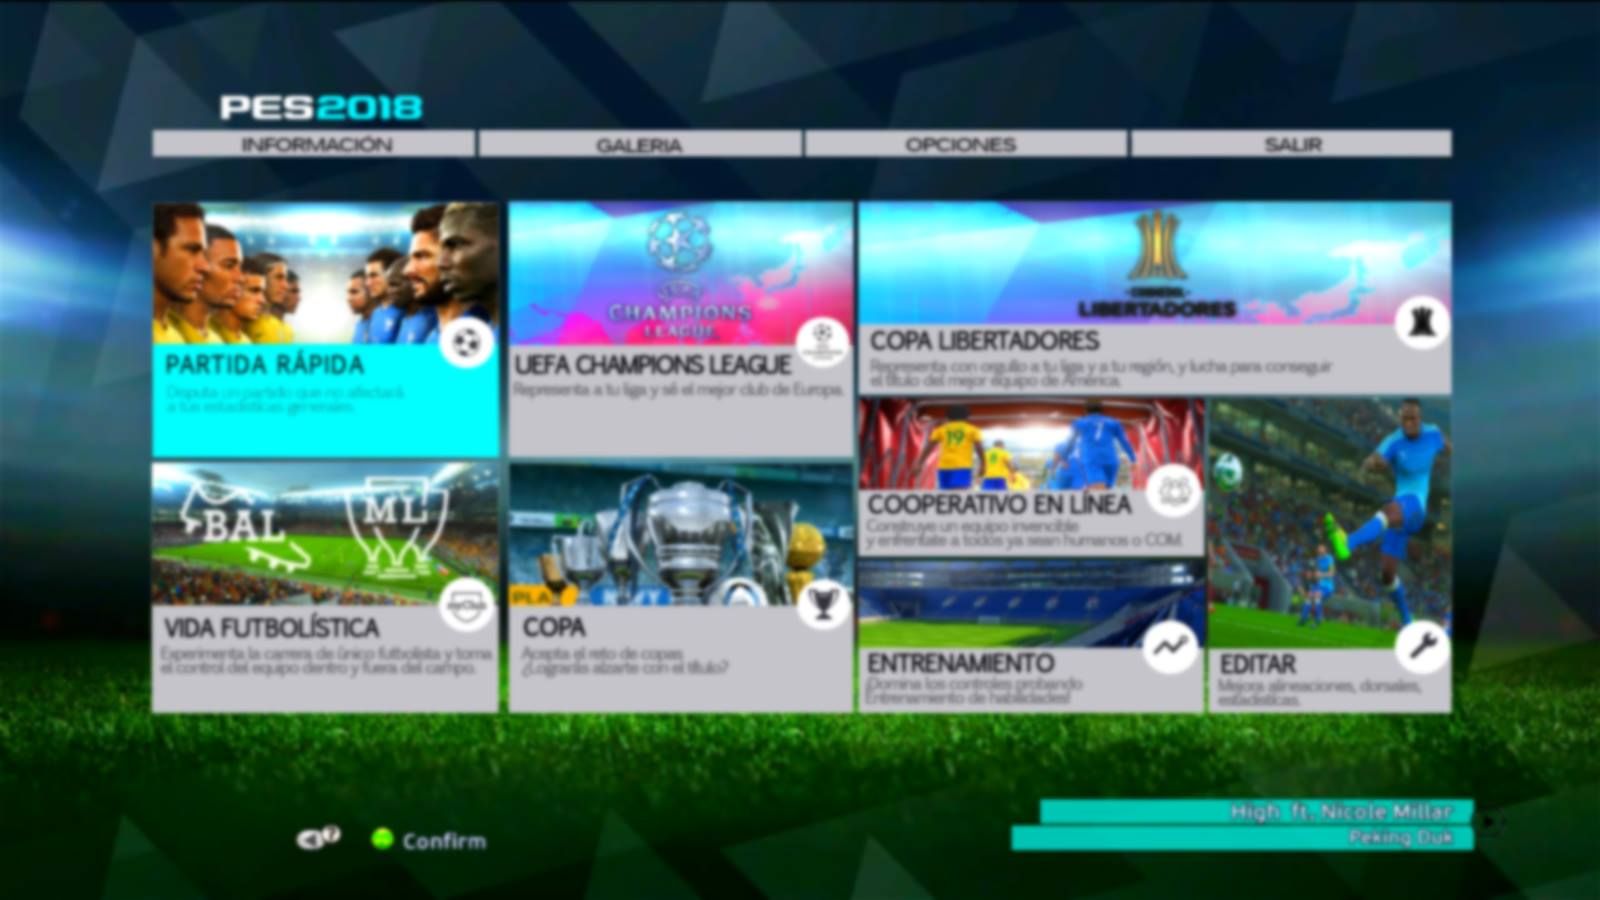 PES 2013 GRAPHIC MENU 2018 MADE BY ANFDESIGNER